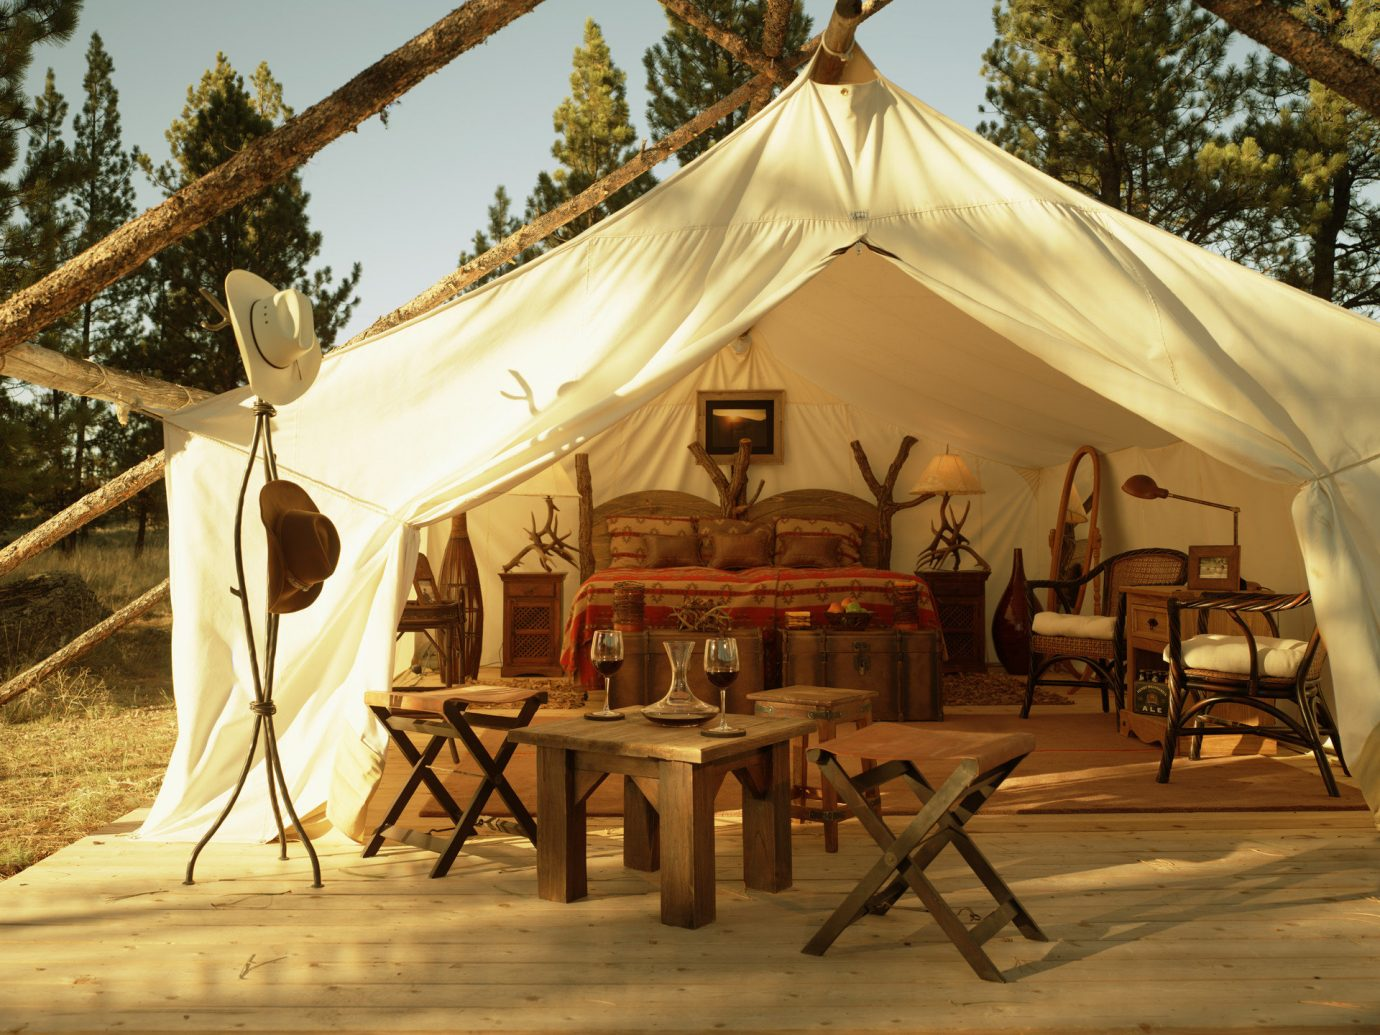 Beauty Bedroom Luxury Nature Outdoors remote Rustic tent tents wilderness chair outdoor outdoor object